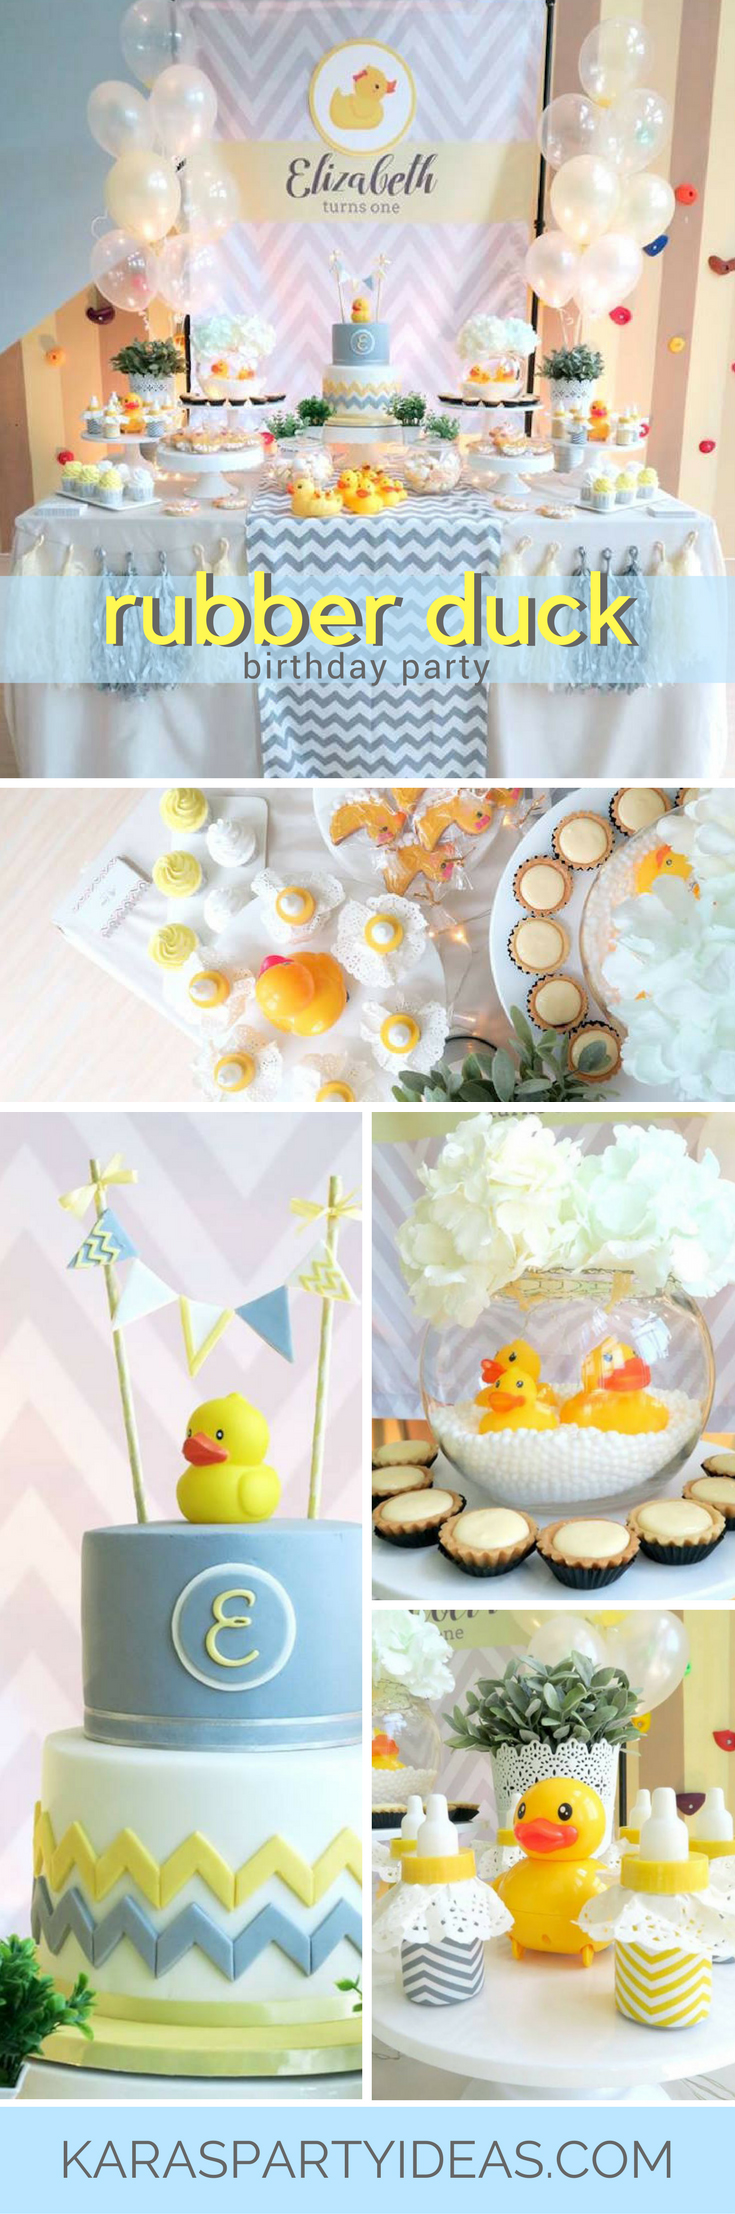 First to review yellow rubber duck click here to cancel reply - Rubber Duck Birthday Party Via Kara S Party Ideas